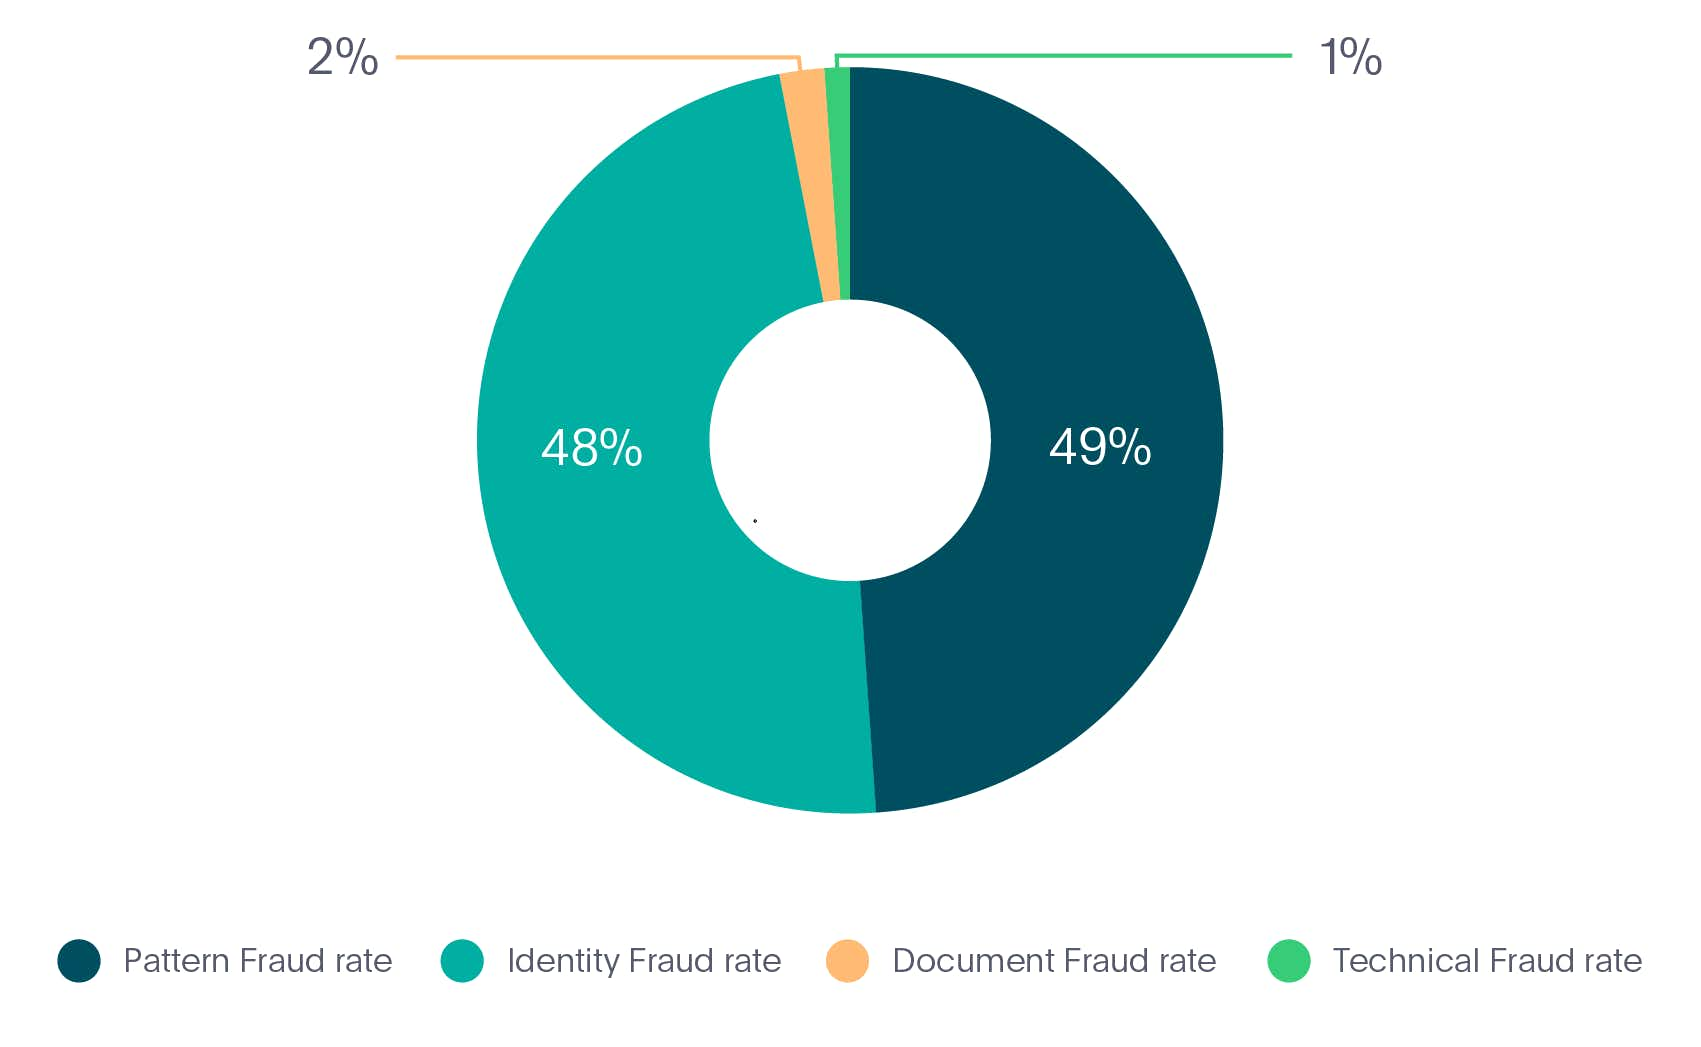 Identity fraud types in Mobility industry in 2020